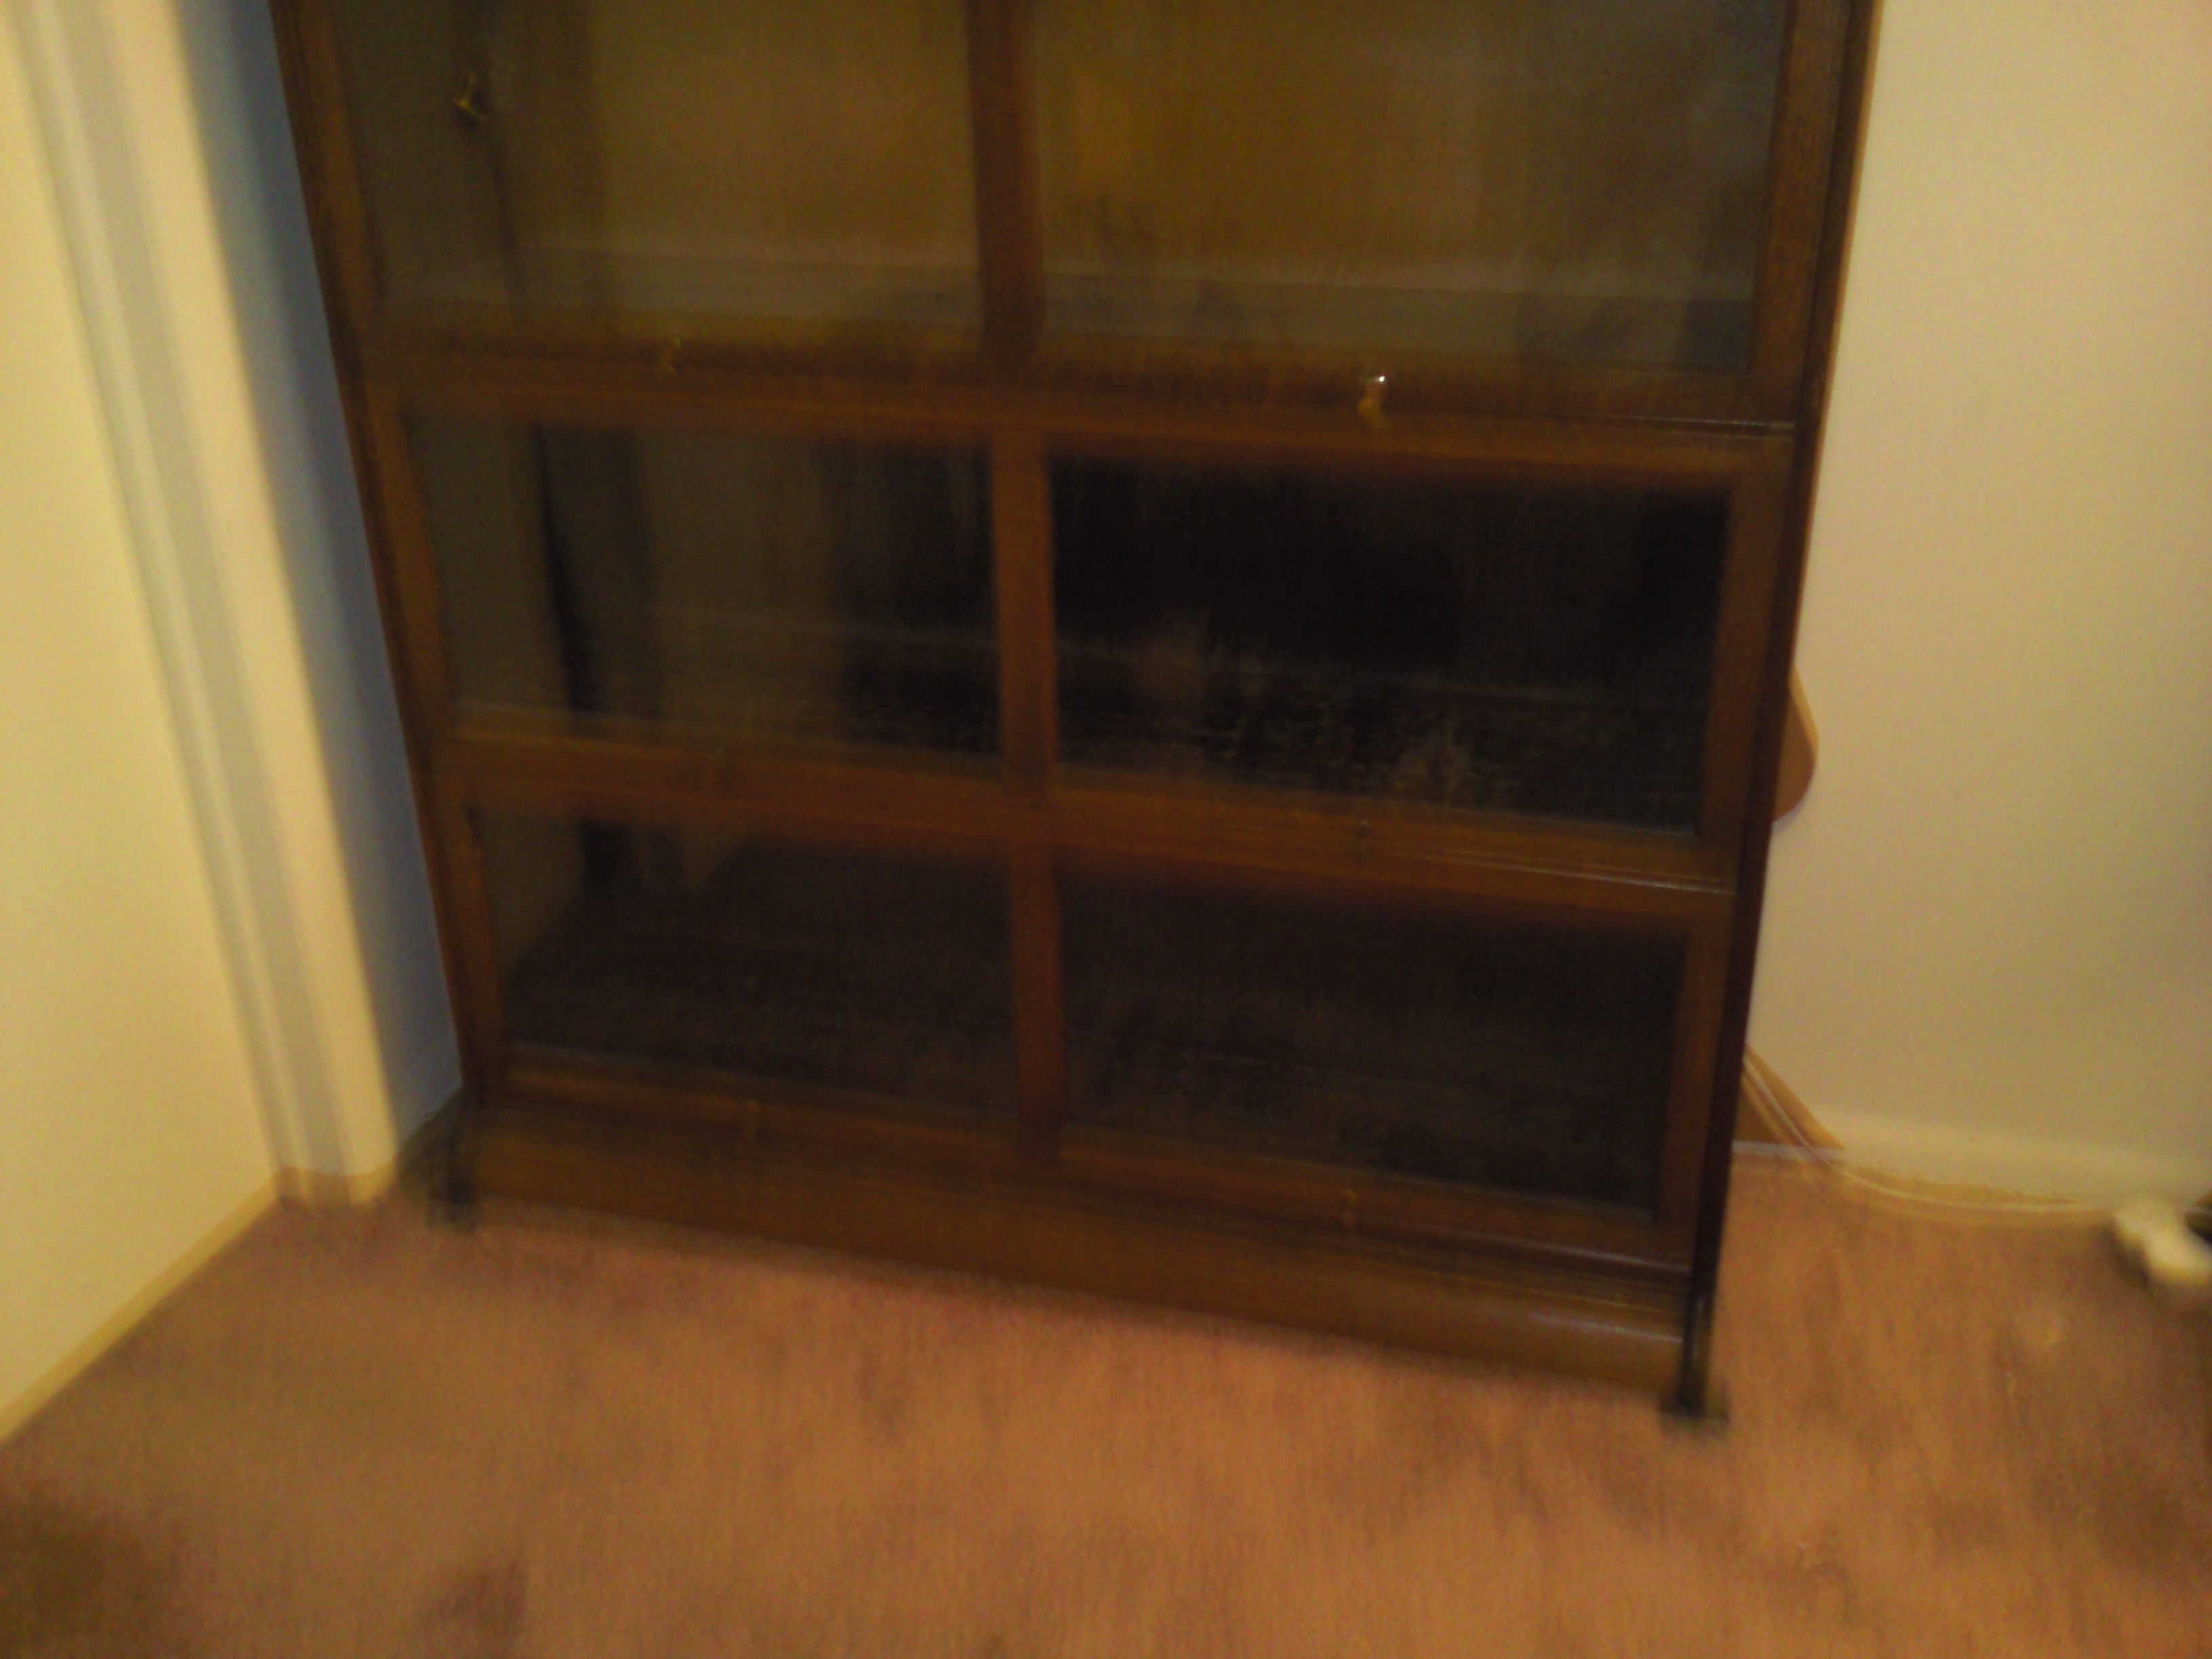 gunn sectional bookcase rare 50 inch wide for sale antiques